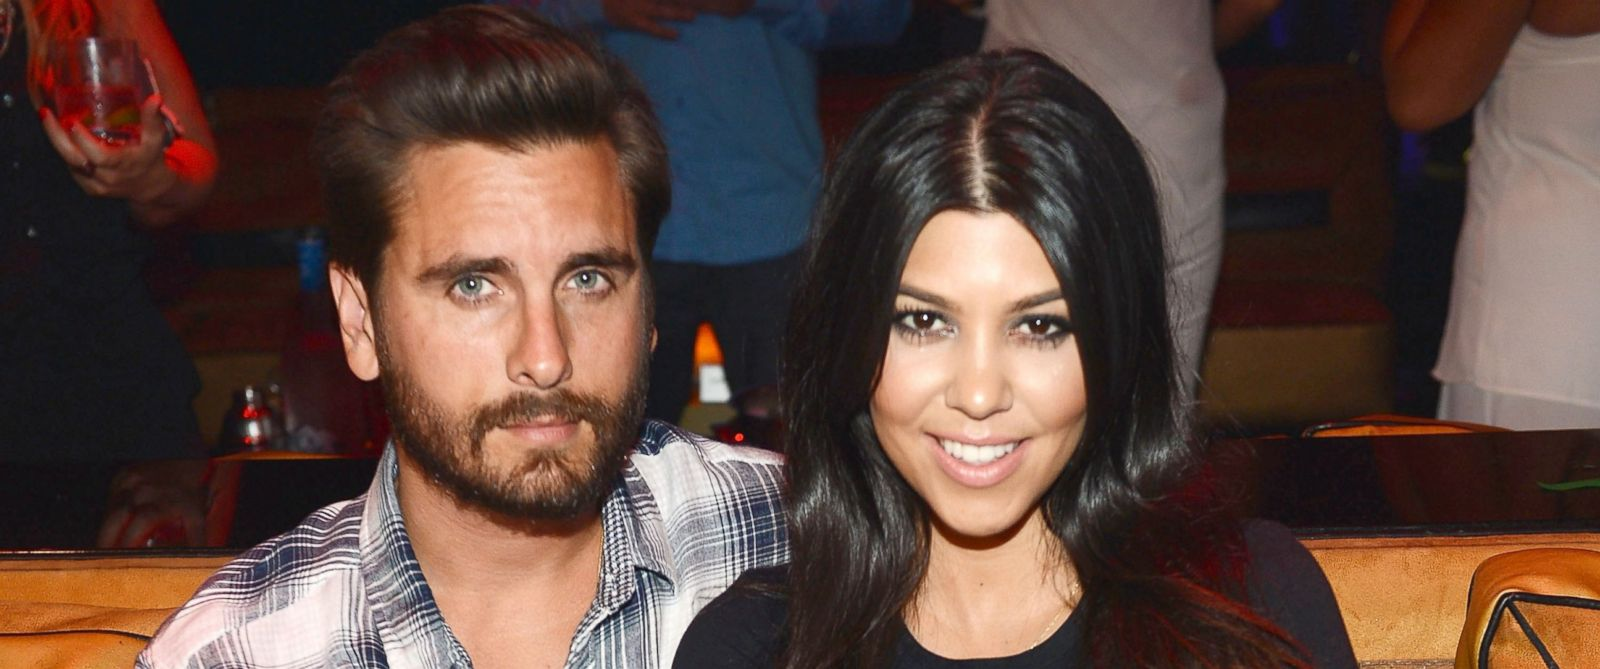 PHOTO: Scott Disick and Kourtney Kardashian celebrate Kourtney Kardashians birthday at 1 OAK Nightclub at The Mirage Hotel & Casino on April 18, 2015 in Las Vegas.